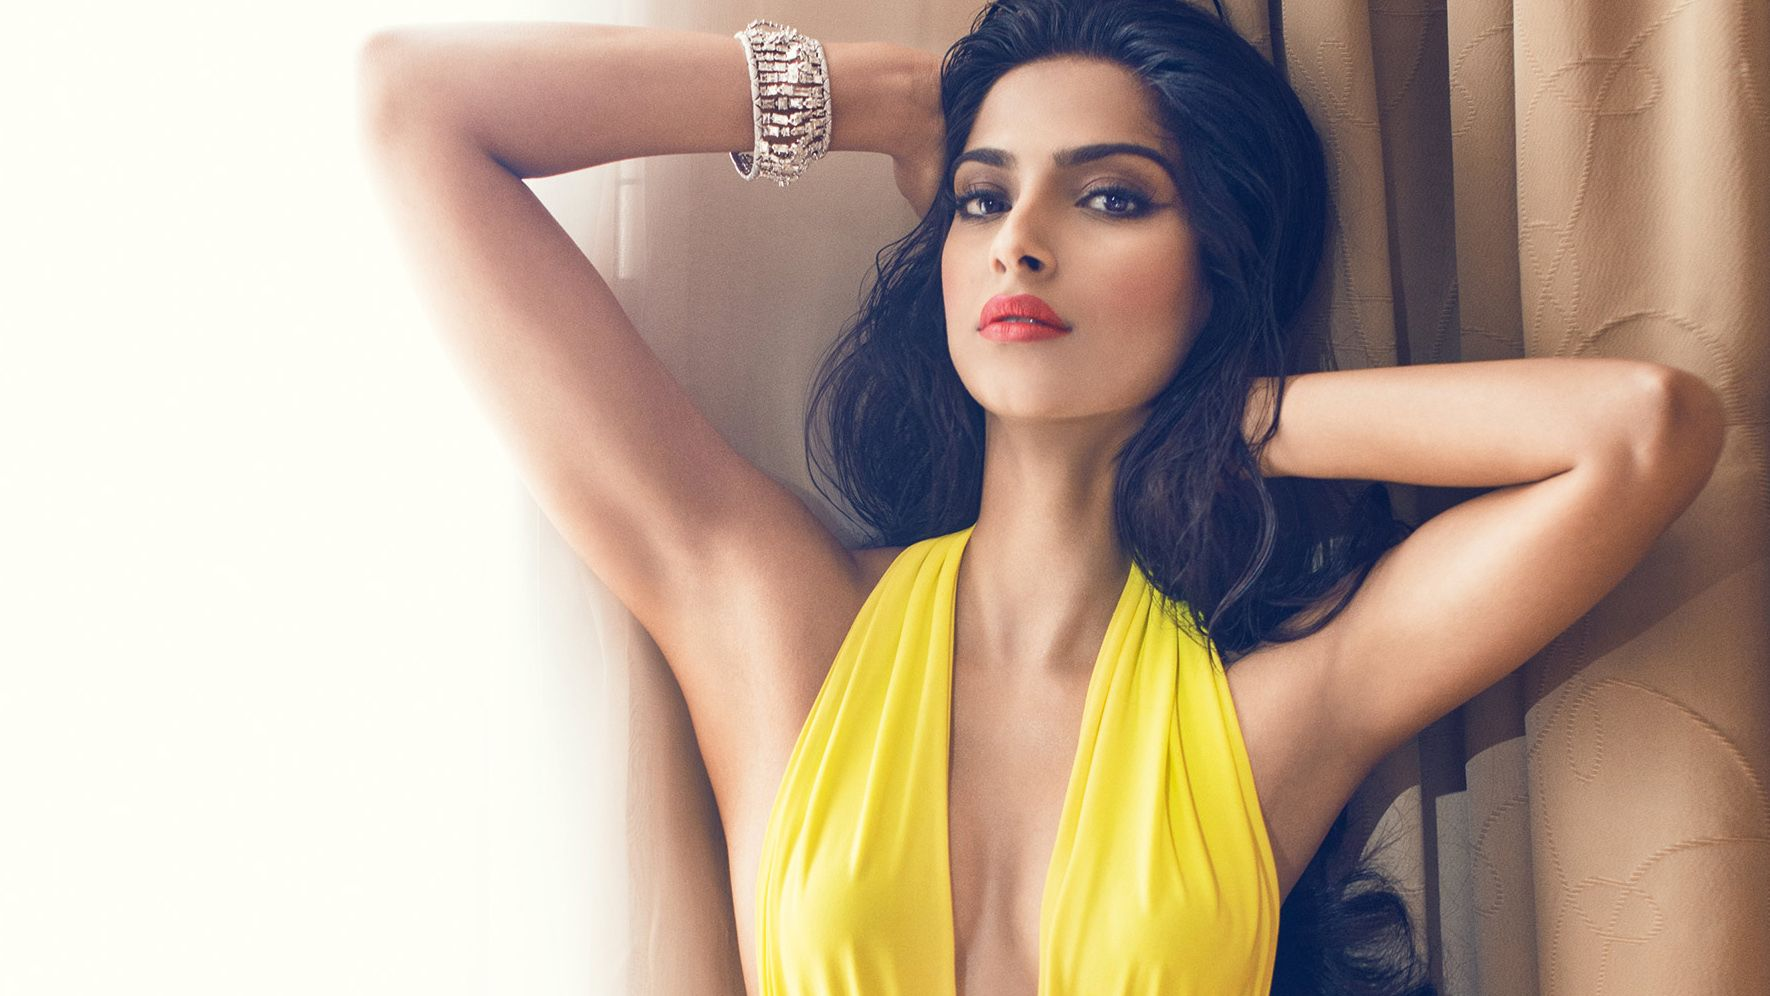 asin thottumkal hindi actress hd wallpapers hd wallpapers 1770×996